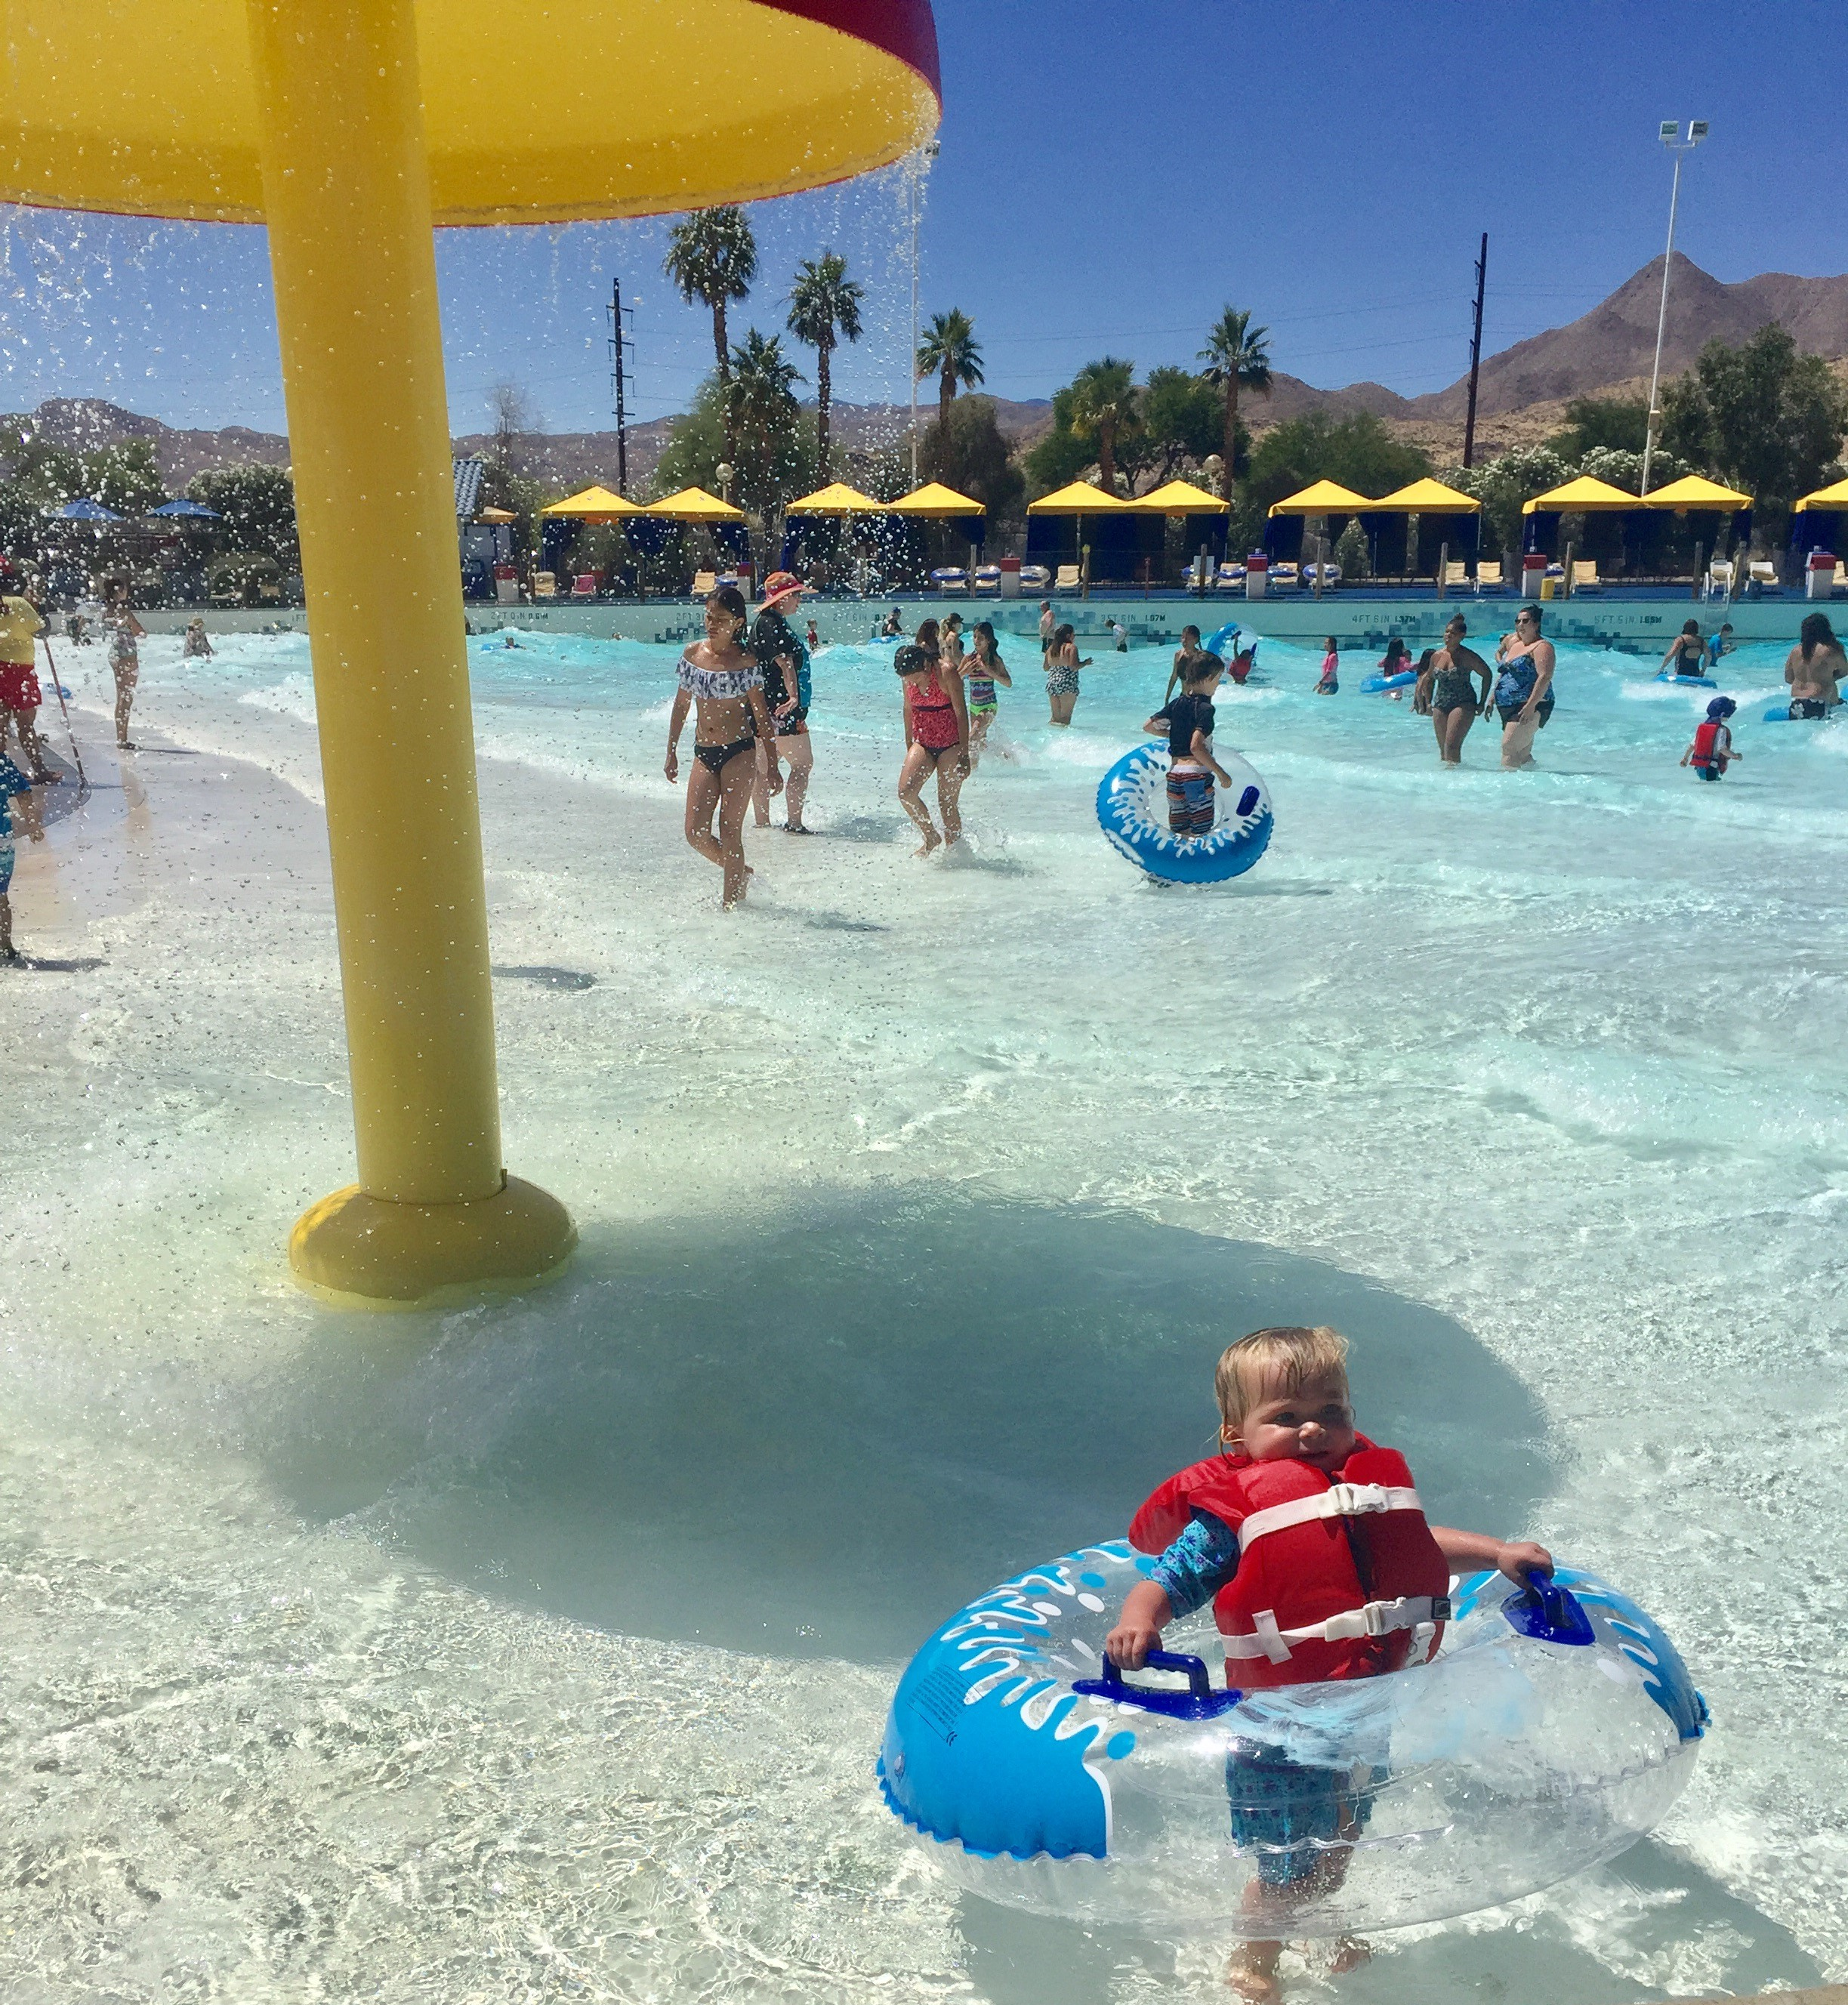 Palm Springs Tourism And Holidays Best Of Palm Springs: Family Vacation To Palm Springs